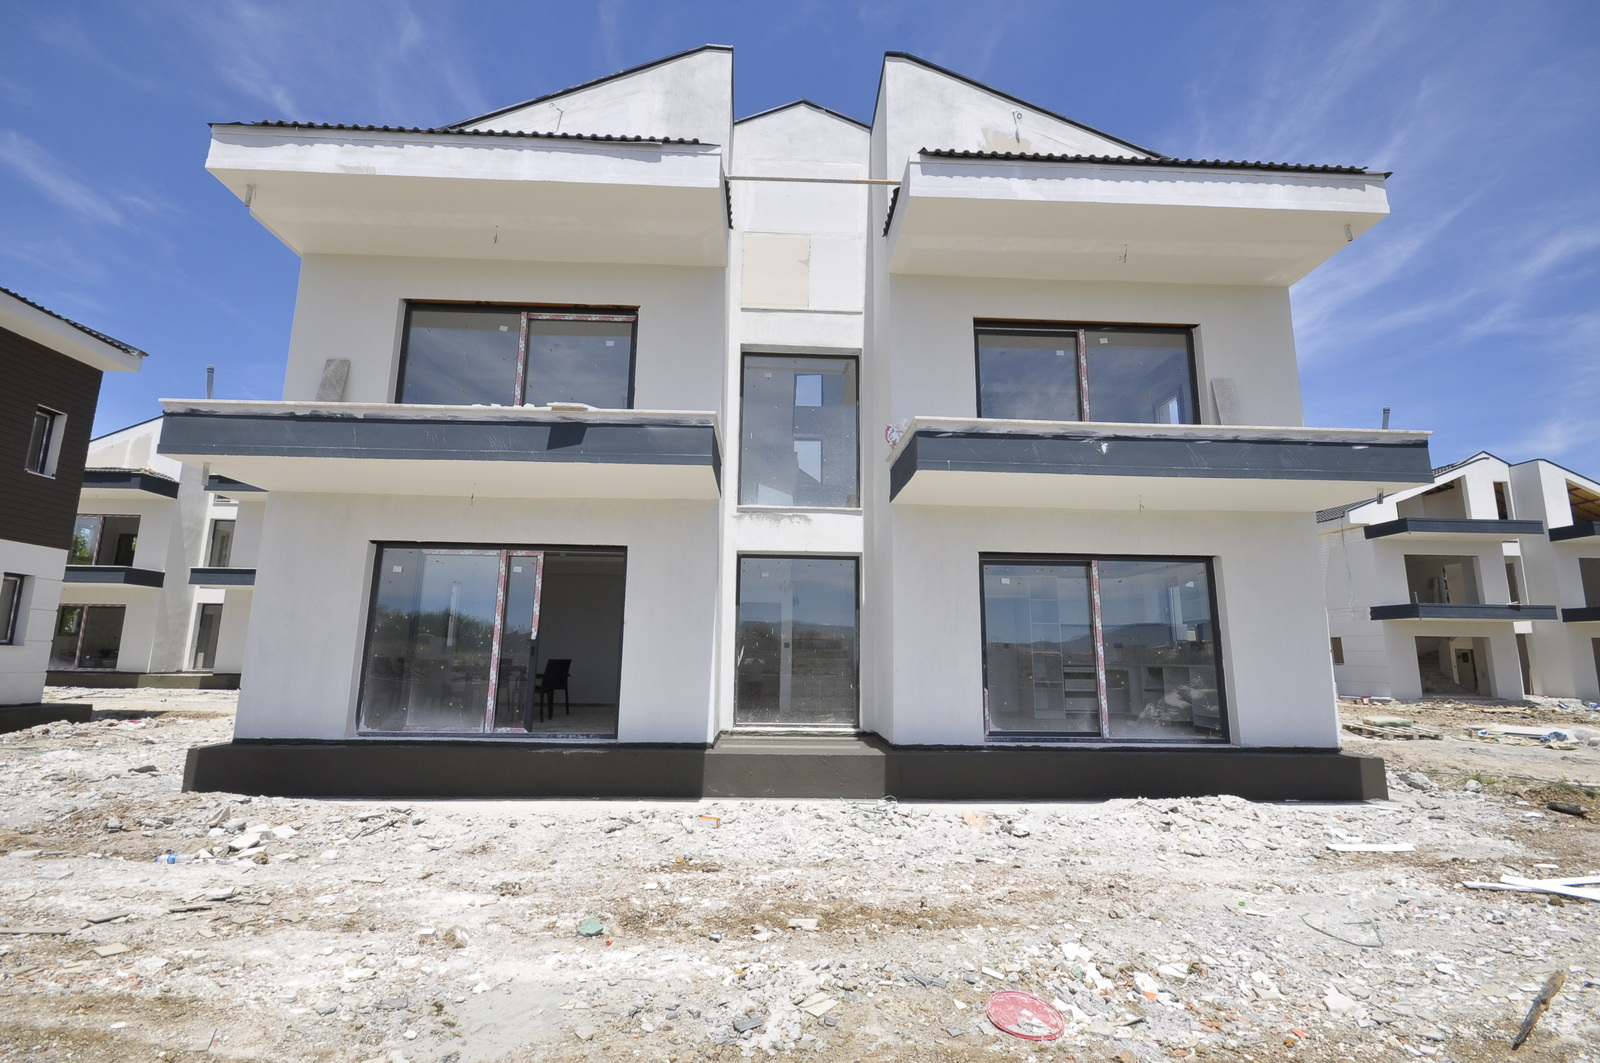 Exlusive 3 Bedroom Villas in Walking Distance to the Beach For Sale